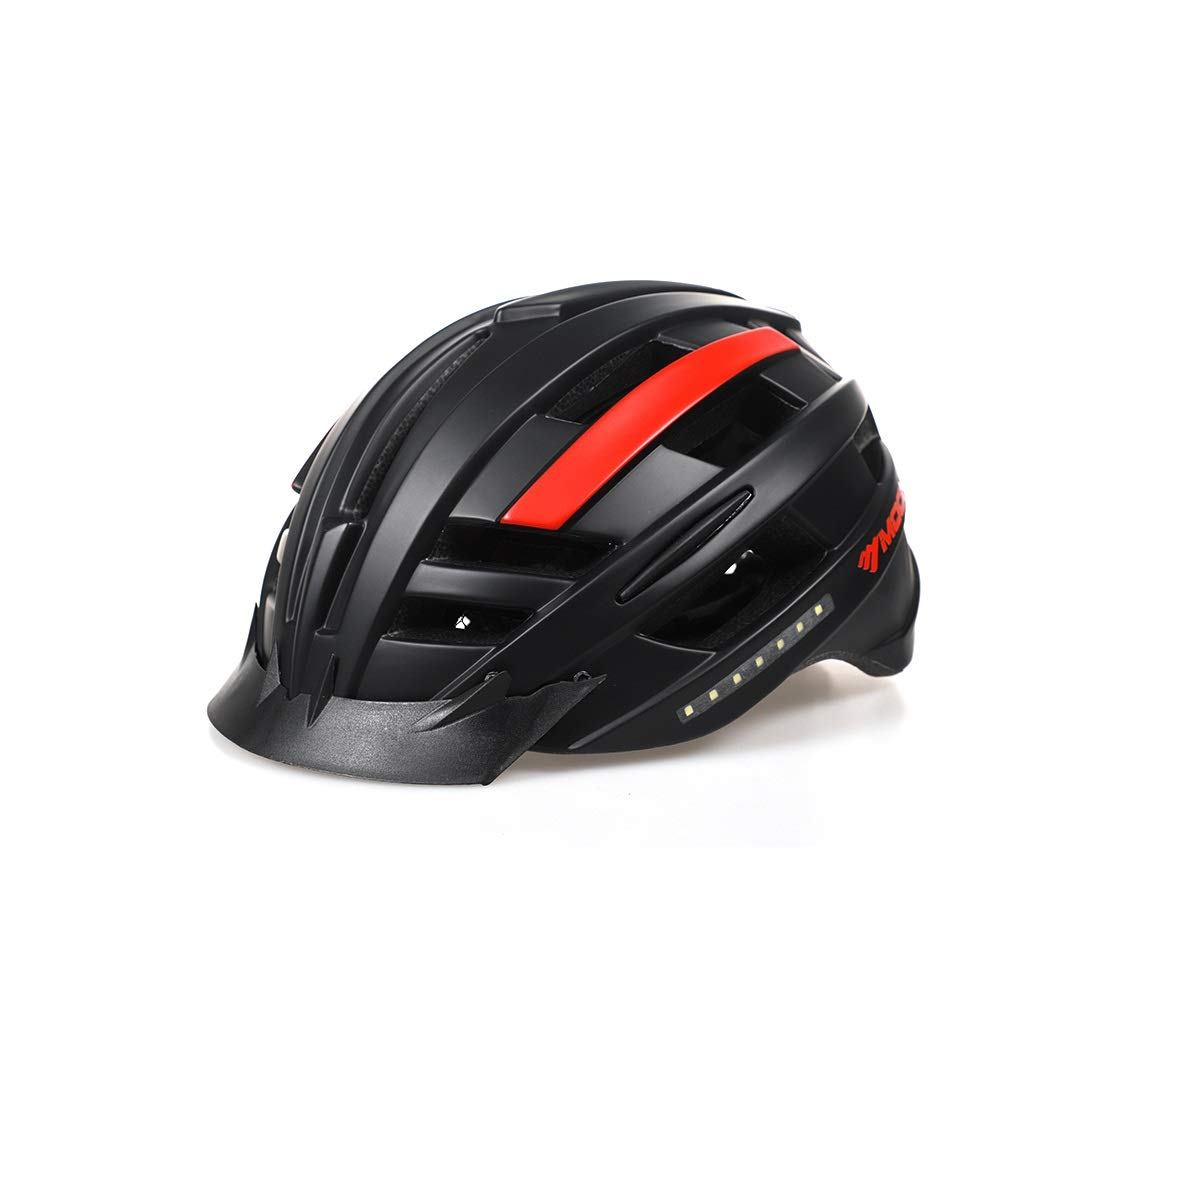 Shengshihuizhong Smart Music Helmet, Self-propelled Helmet, Built-in Reinforced Skeleton for Added Protection - Adult Size, Comfortable, Lightweight, Breathable (with Turn Signal, Can Be Connected to